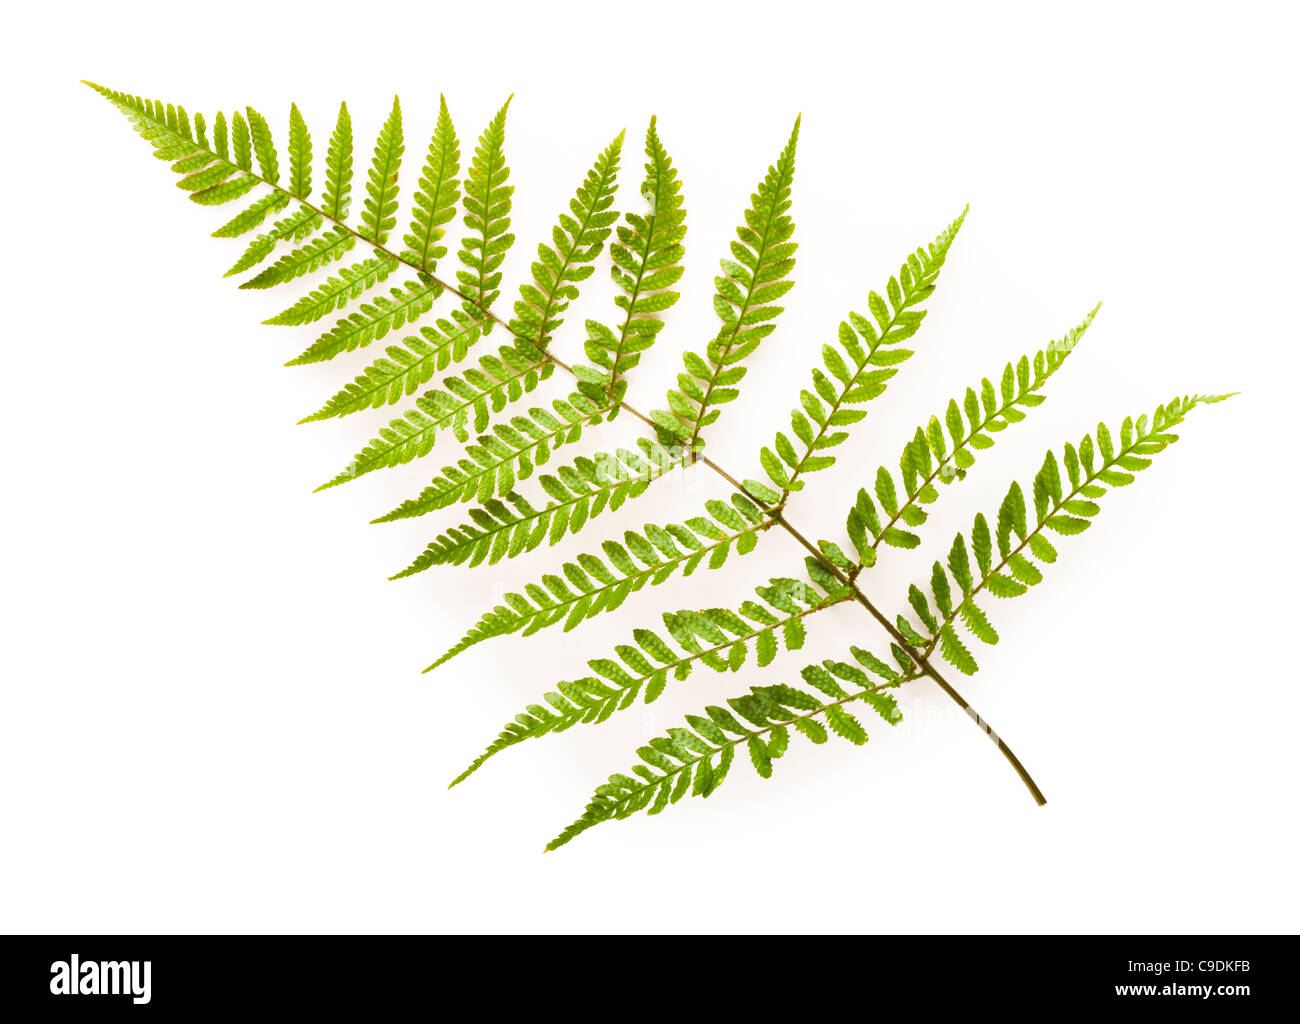 Fern leaf, Japanese Shield Fern, Dryopteris erythrosora. Stock Photo